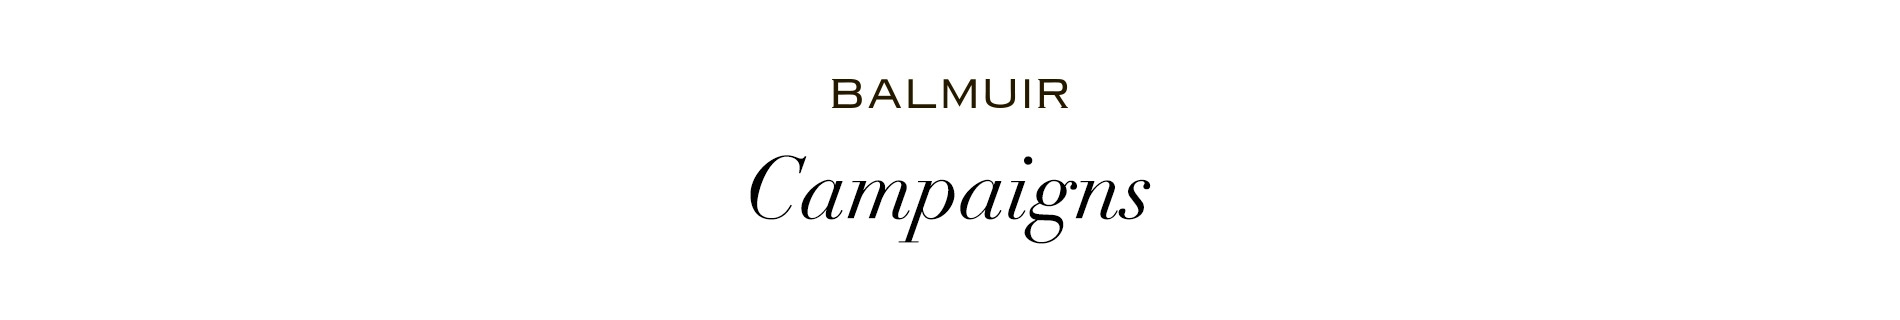 Balmuir campaigns